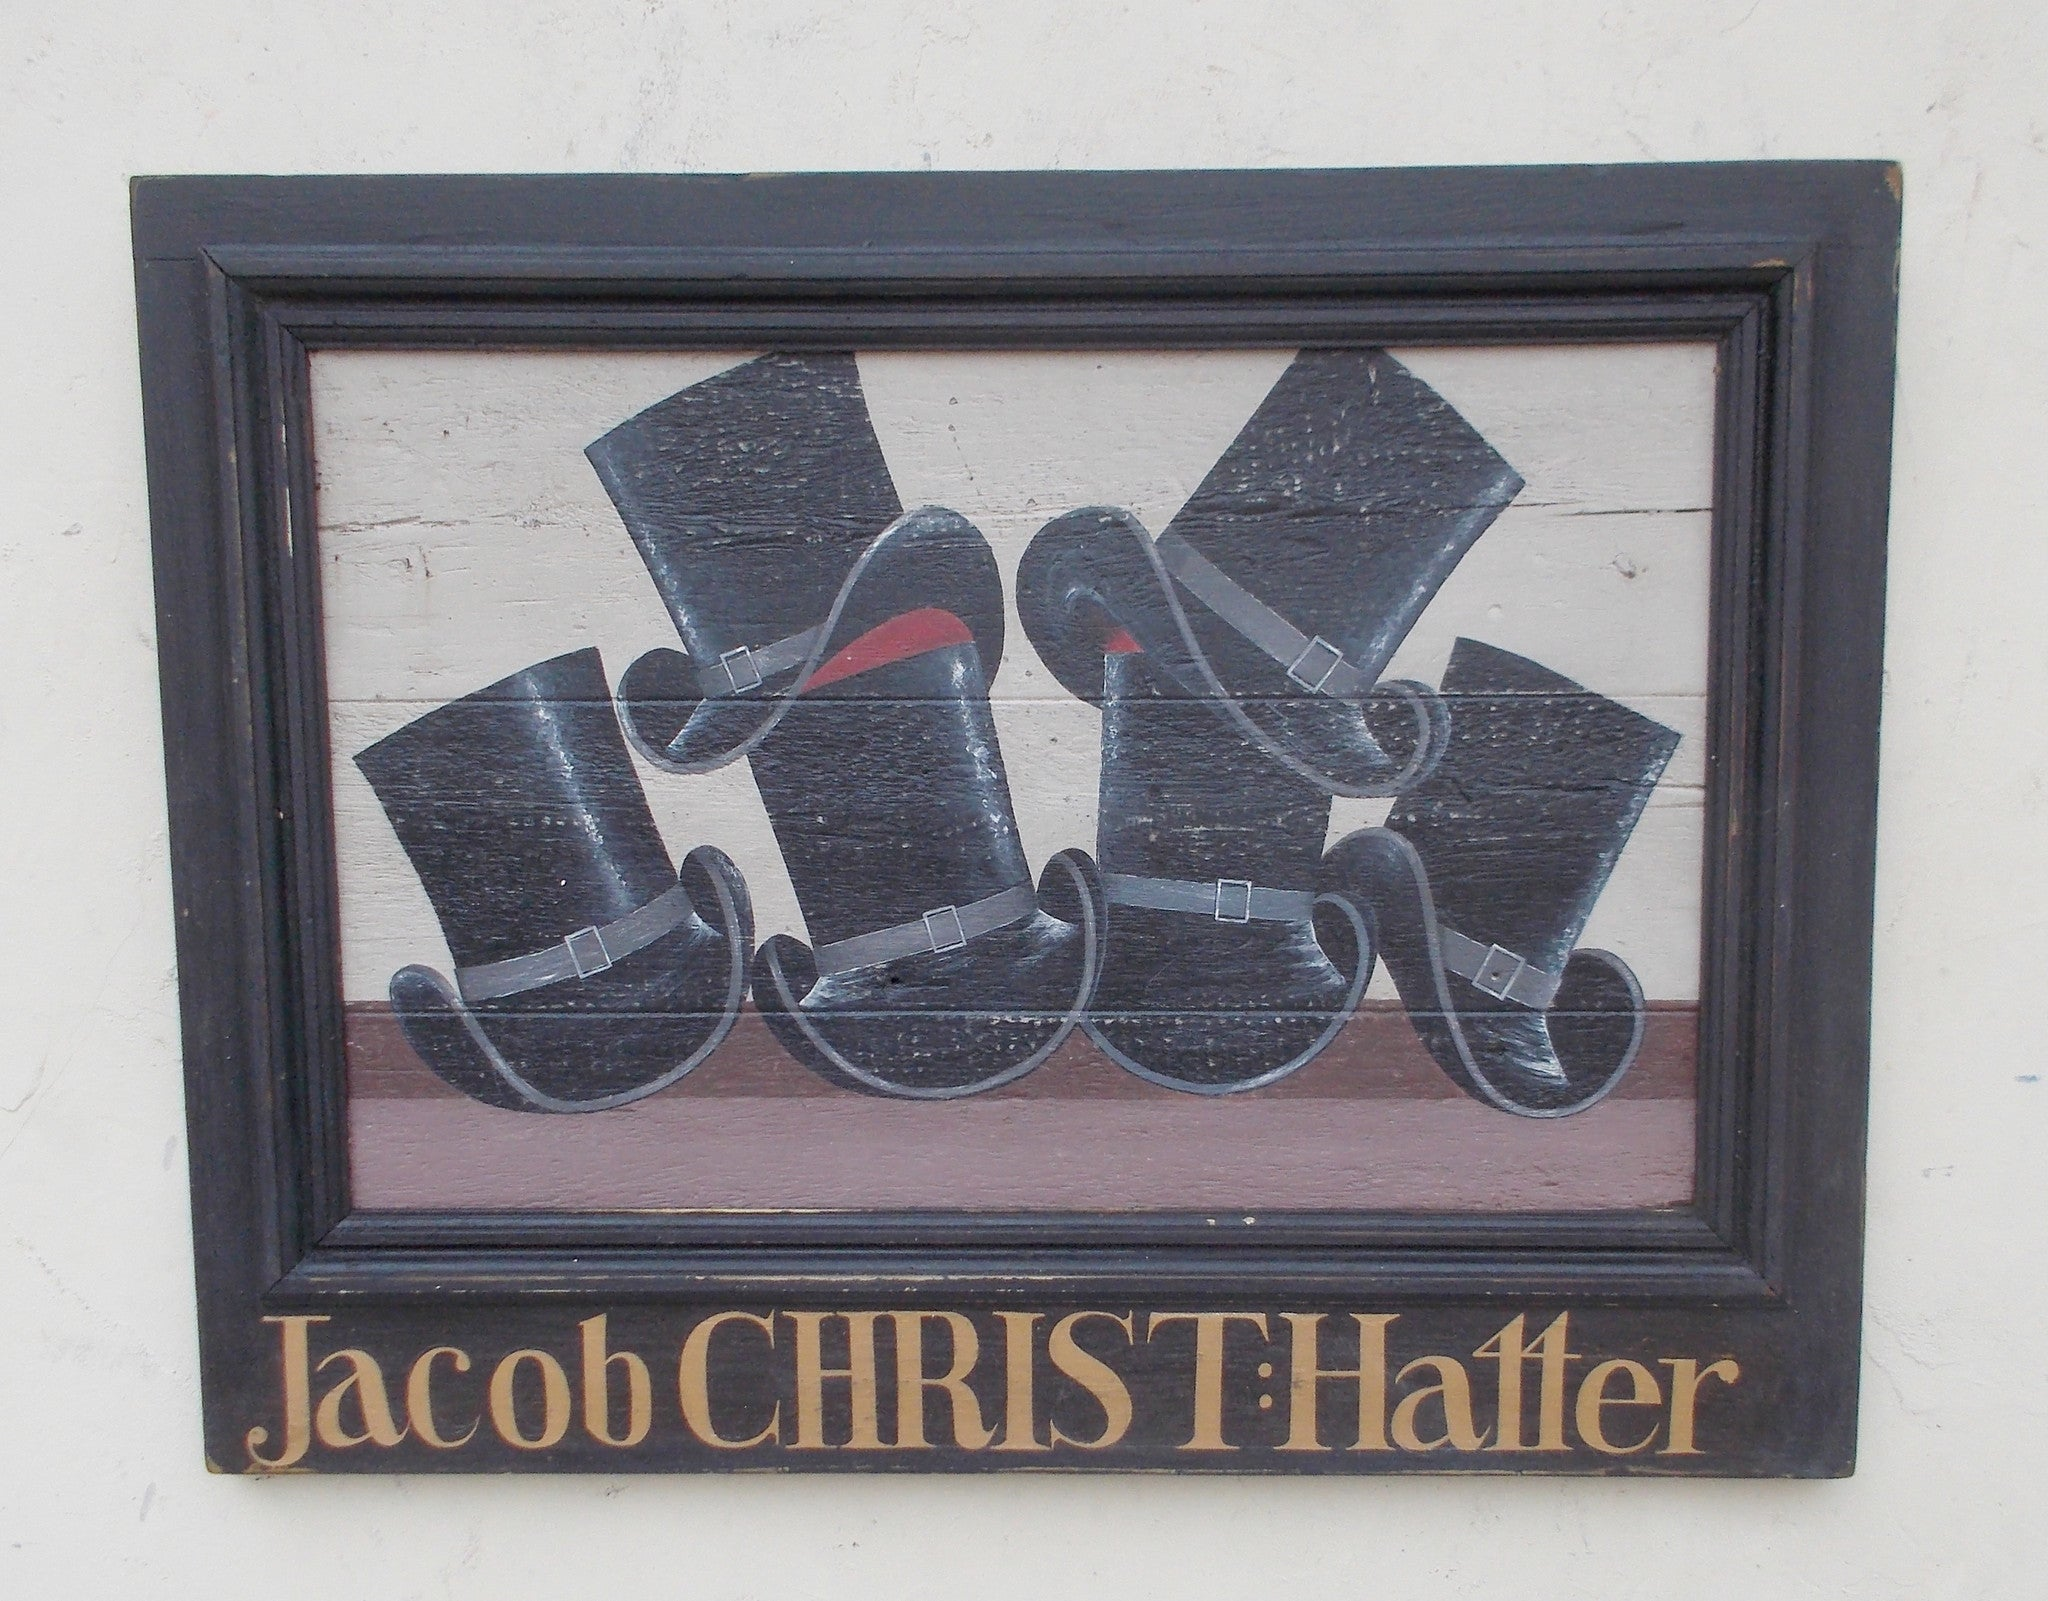 Jacob Christ:Hatter